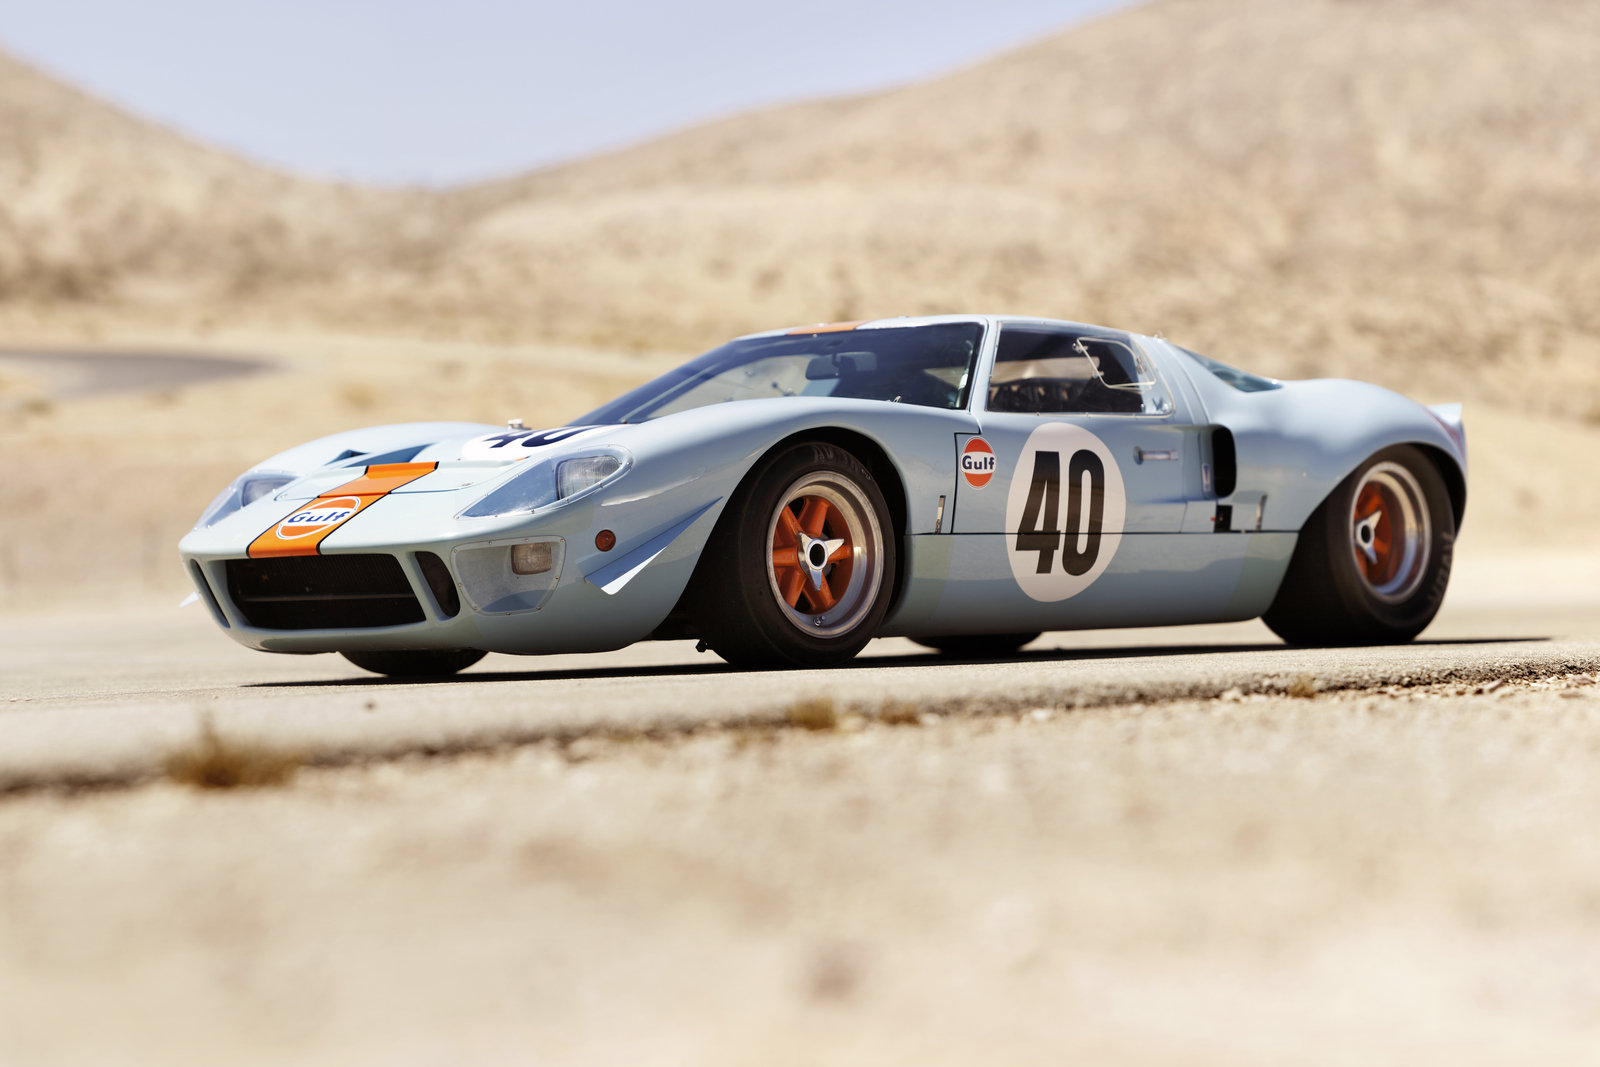 Ford GT 1960: Review, Amazing Pictures and Images – Look at the car